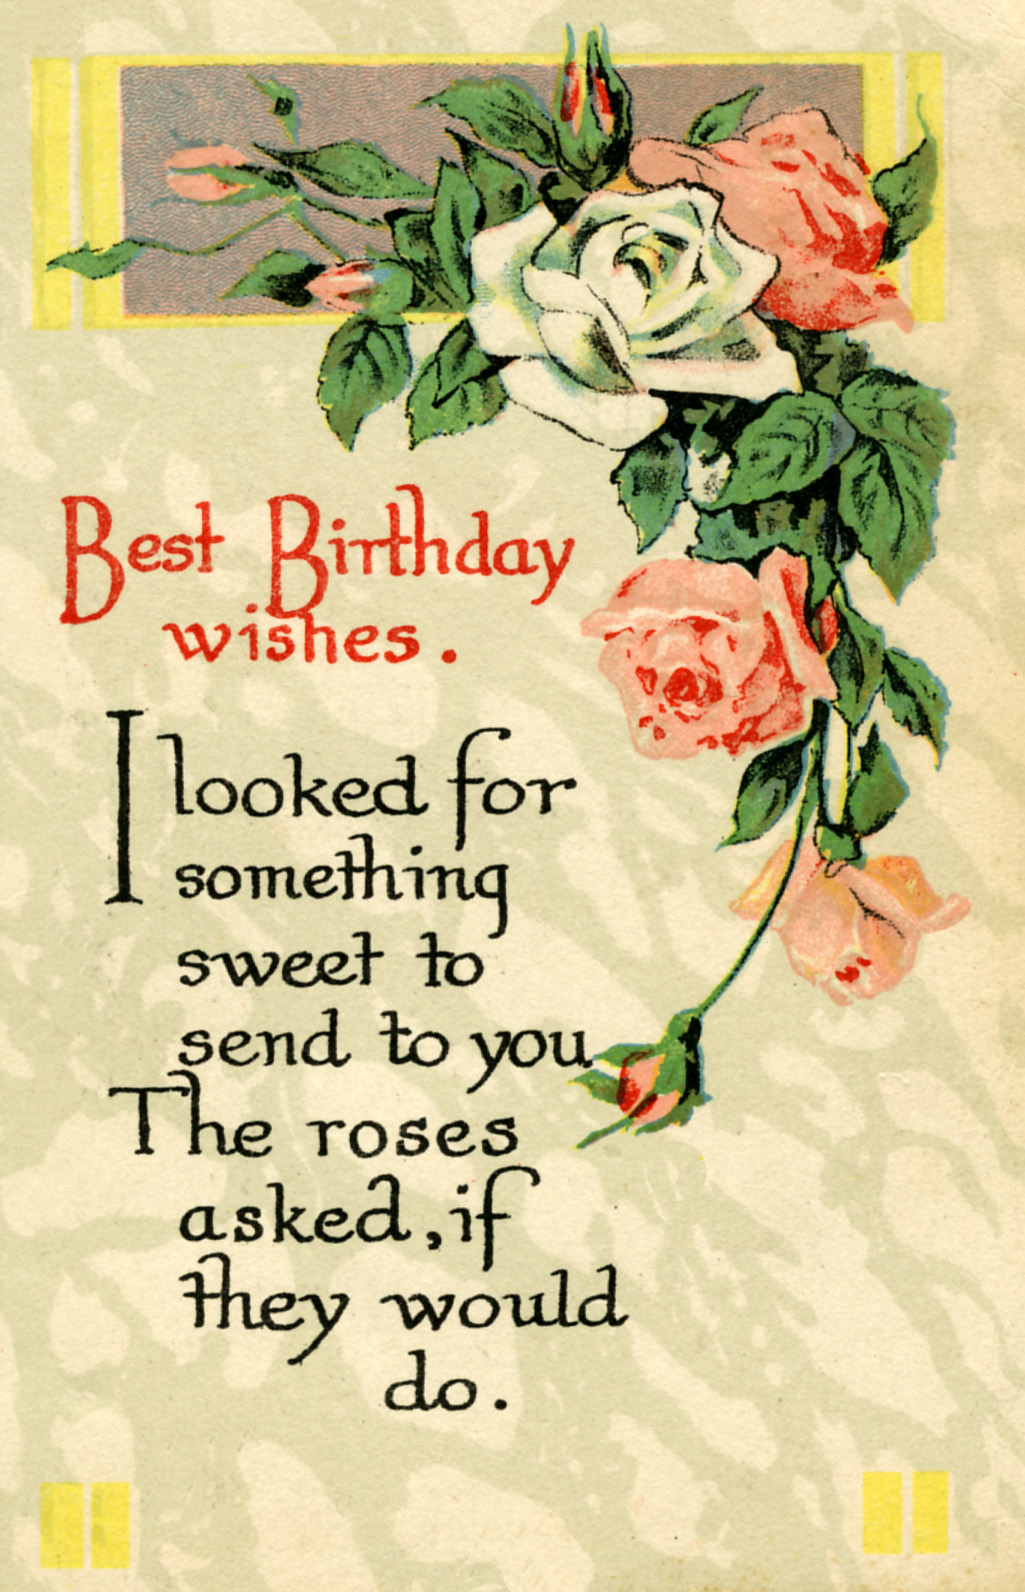 happy birthday wishes greeting cards for friends ; 9b978bd350f52f6c9f1355aaba10c795